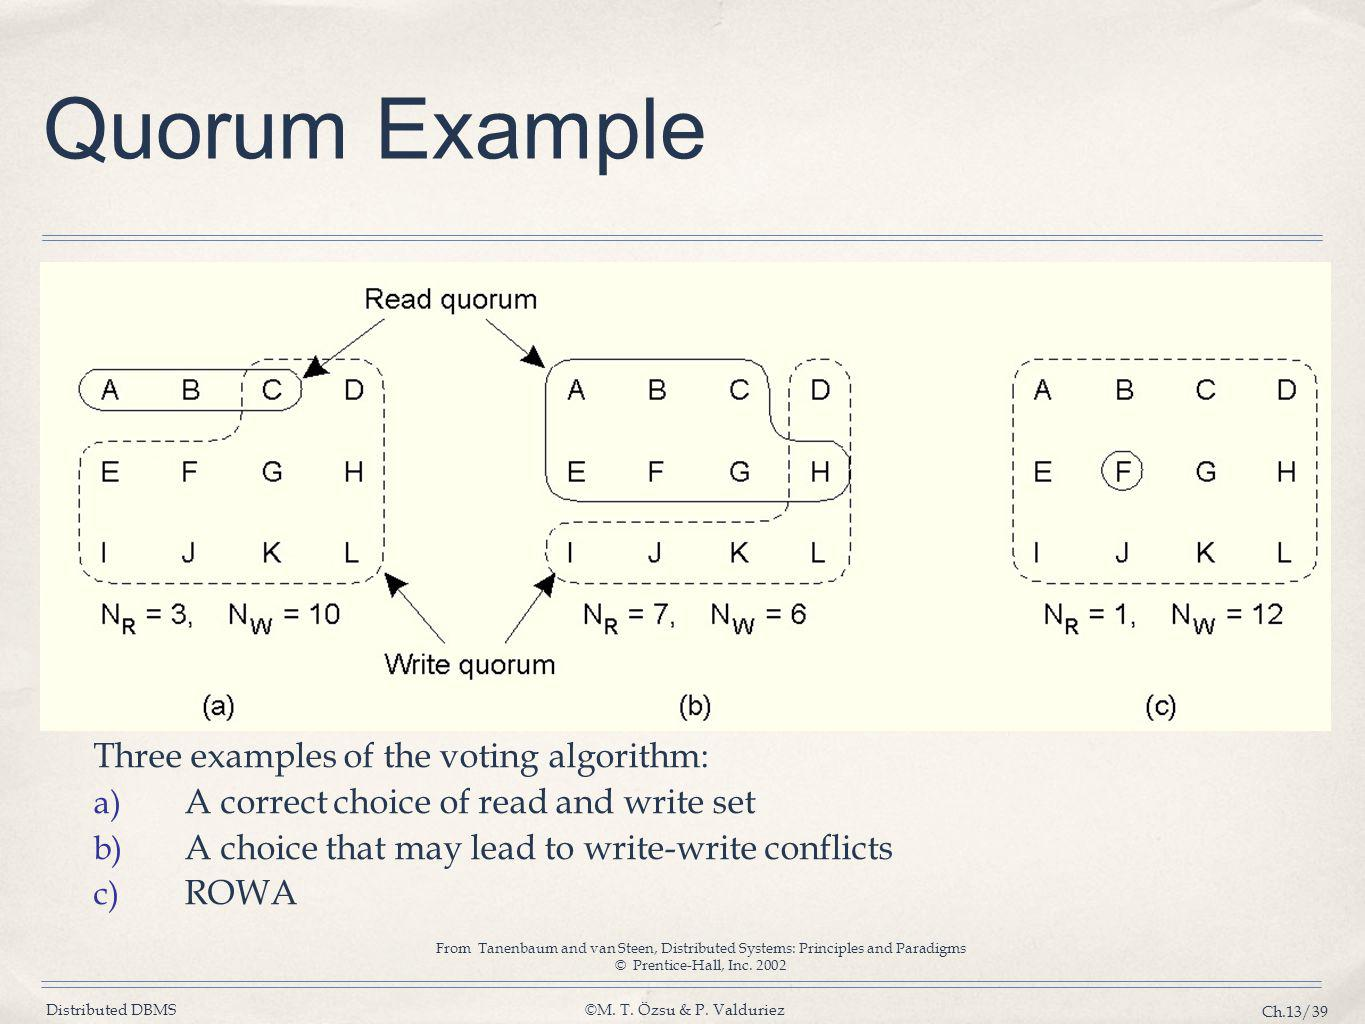 Distributed DBMS©M. T. Özsu & P. Valduriez Ch.13/39 Quorum Example Three examples of the voting algorithm: a) A correct choice of read and write set b